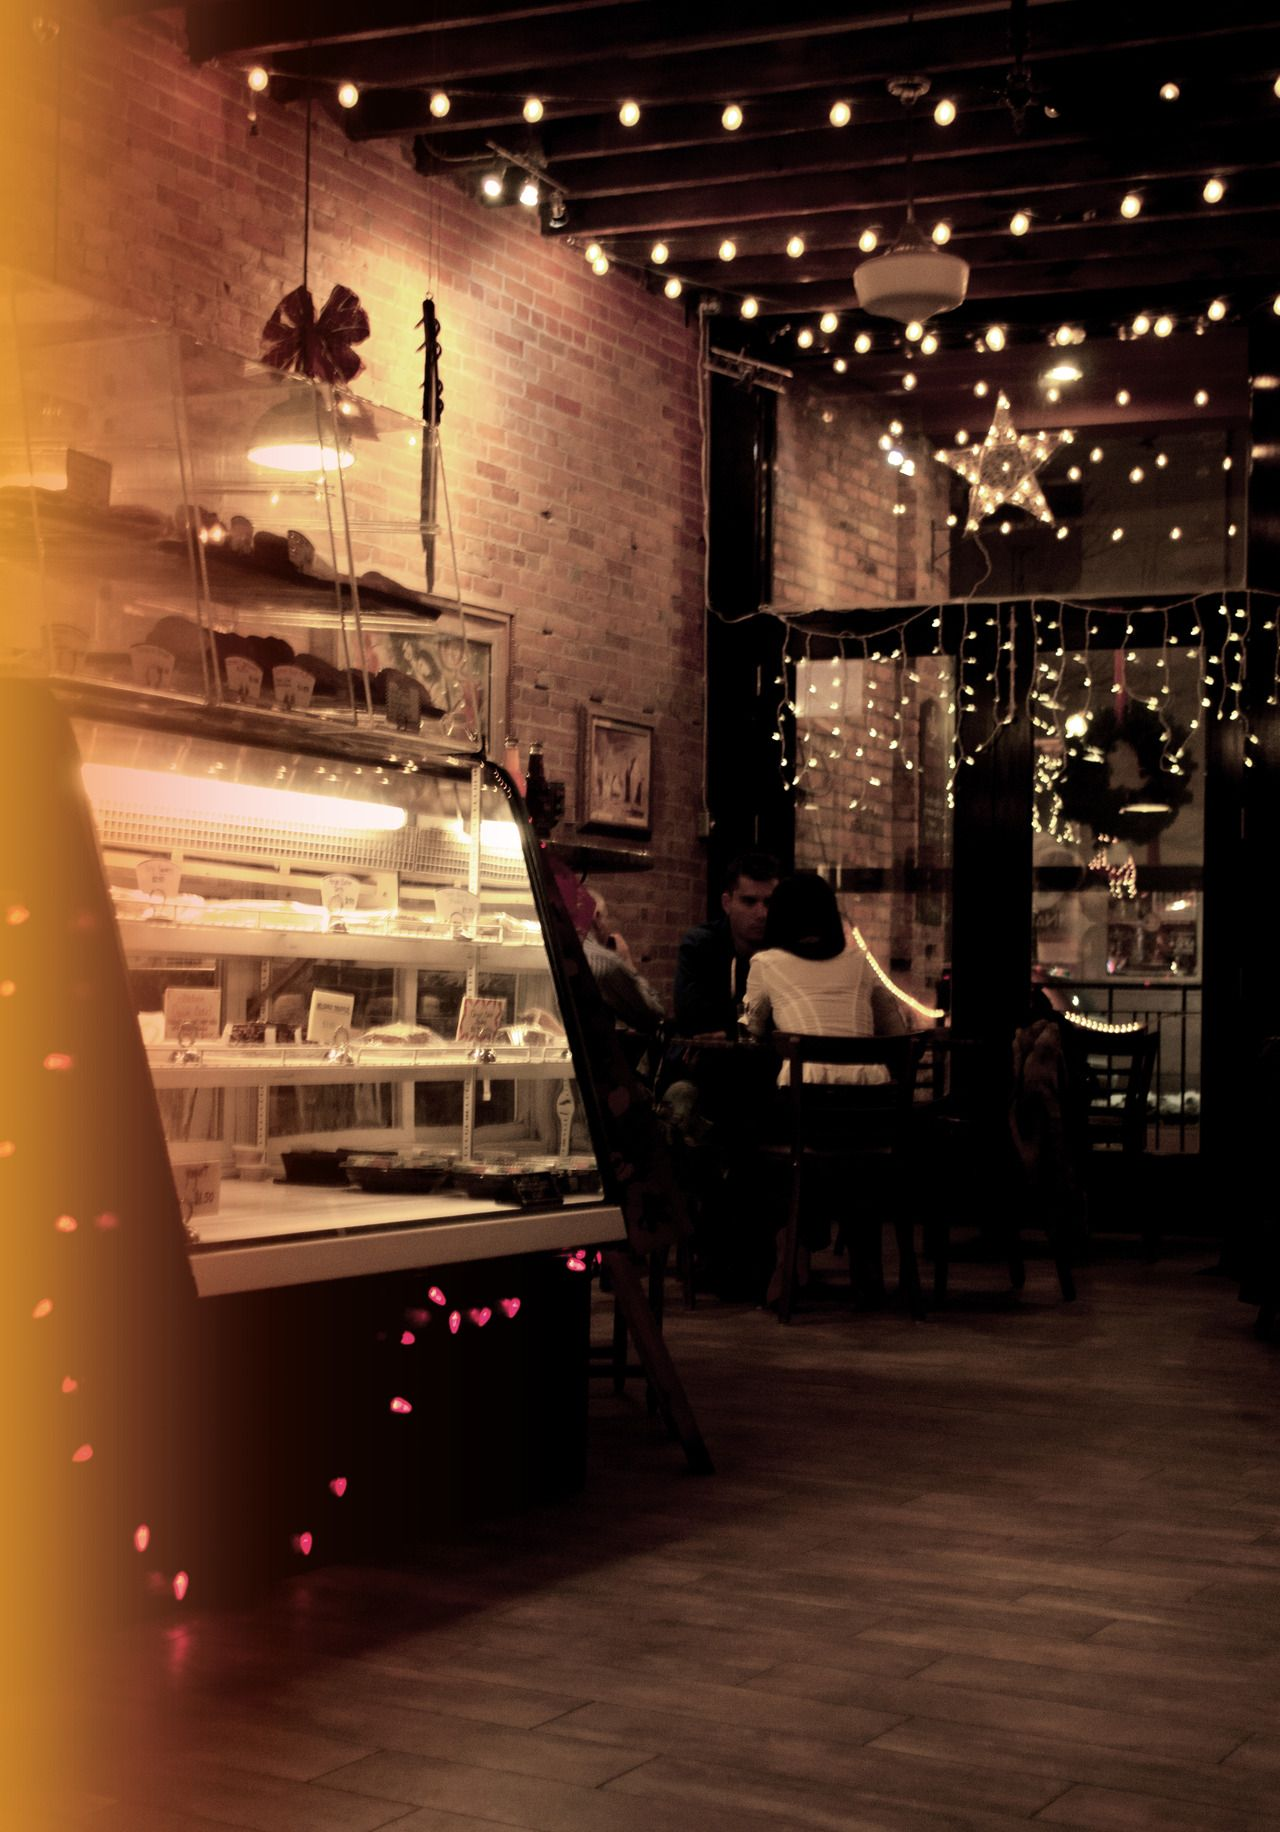 I Love The Lighting And Rustic Feel This Is A Great Way To Transition Your Shop From An Open An Airy Day Spot Rustic Coffee Shop Coffee Shop Decor Coffee Shop